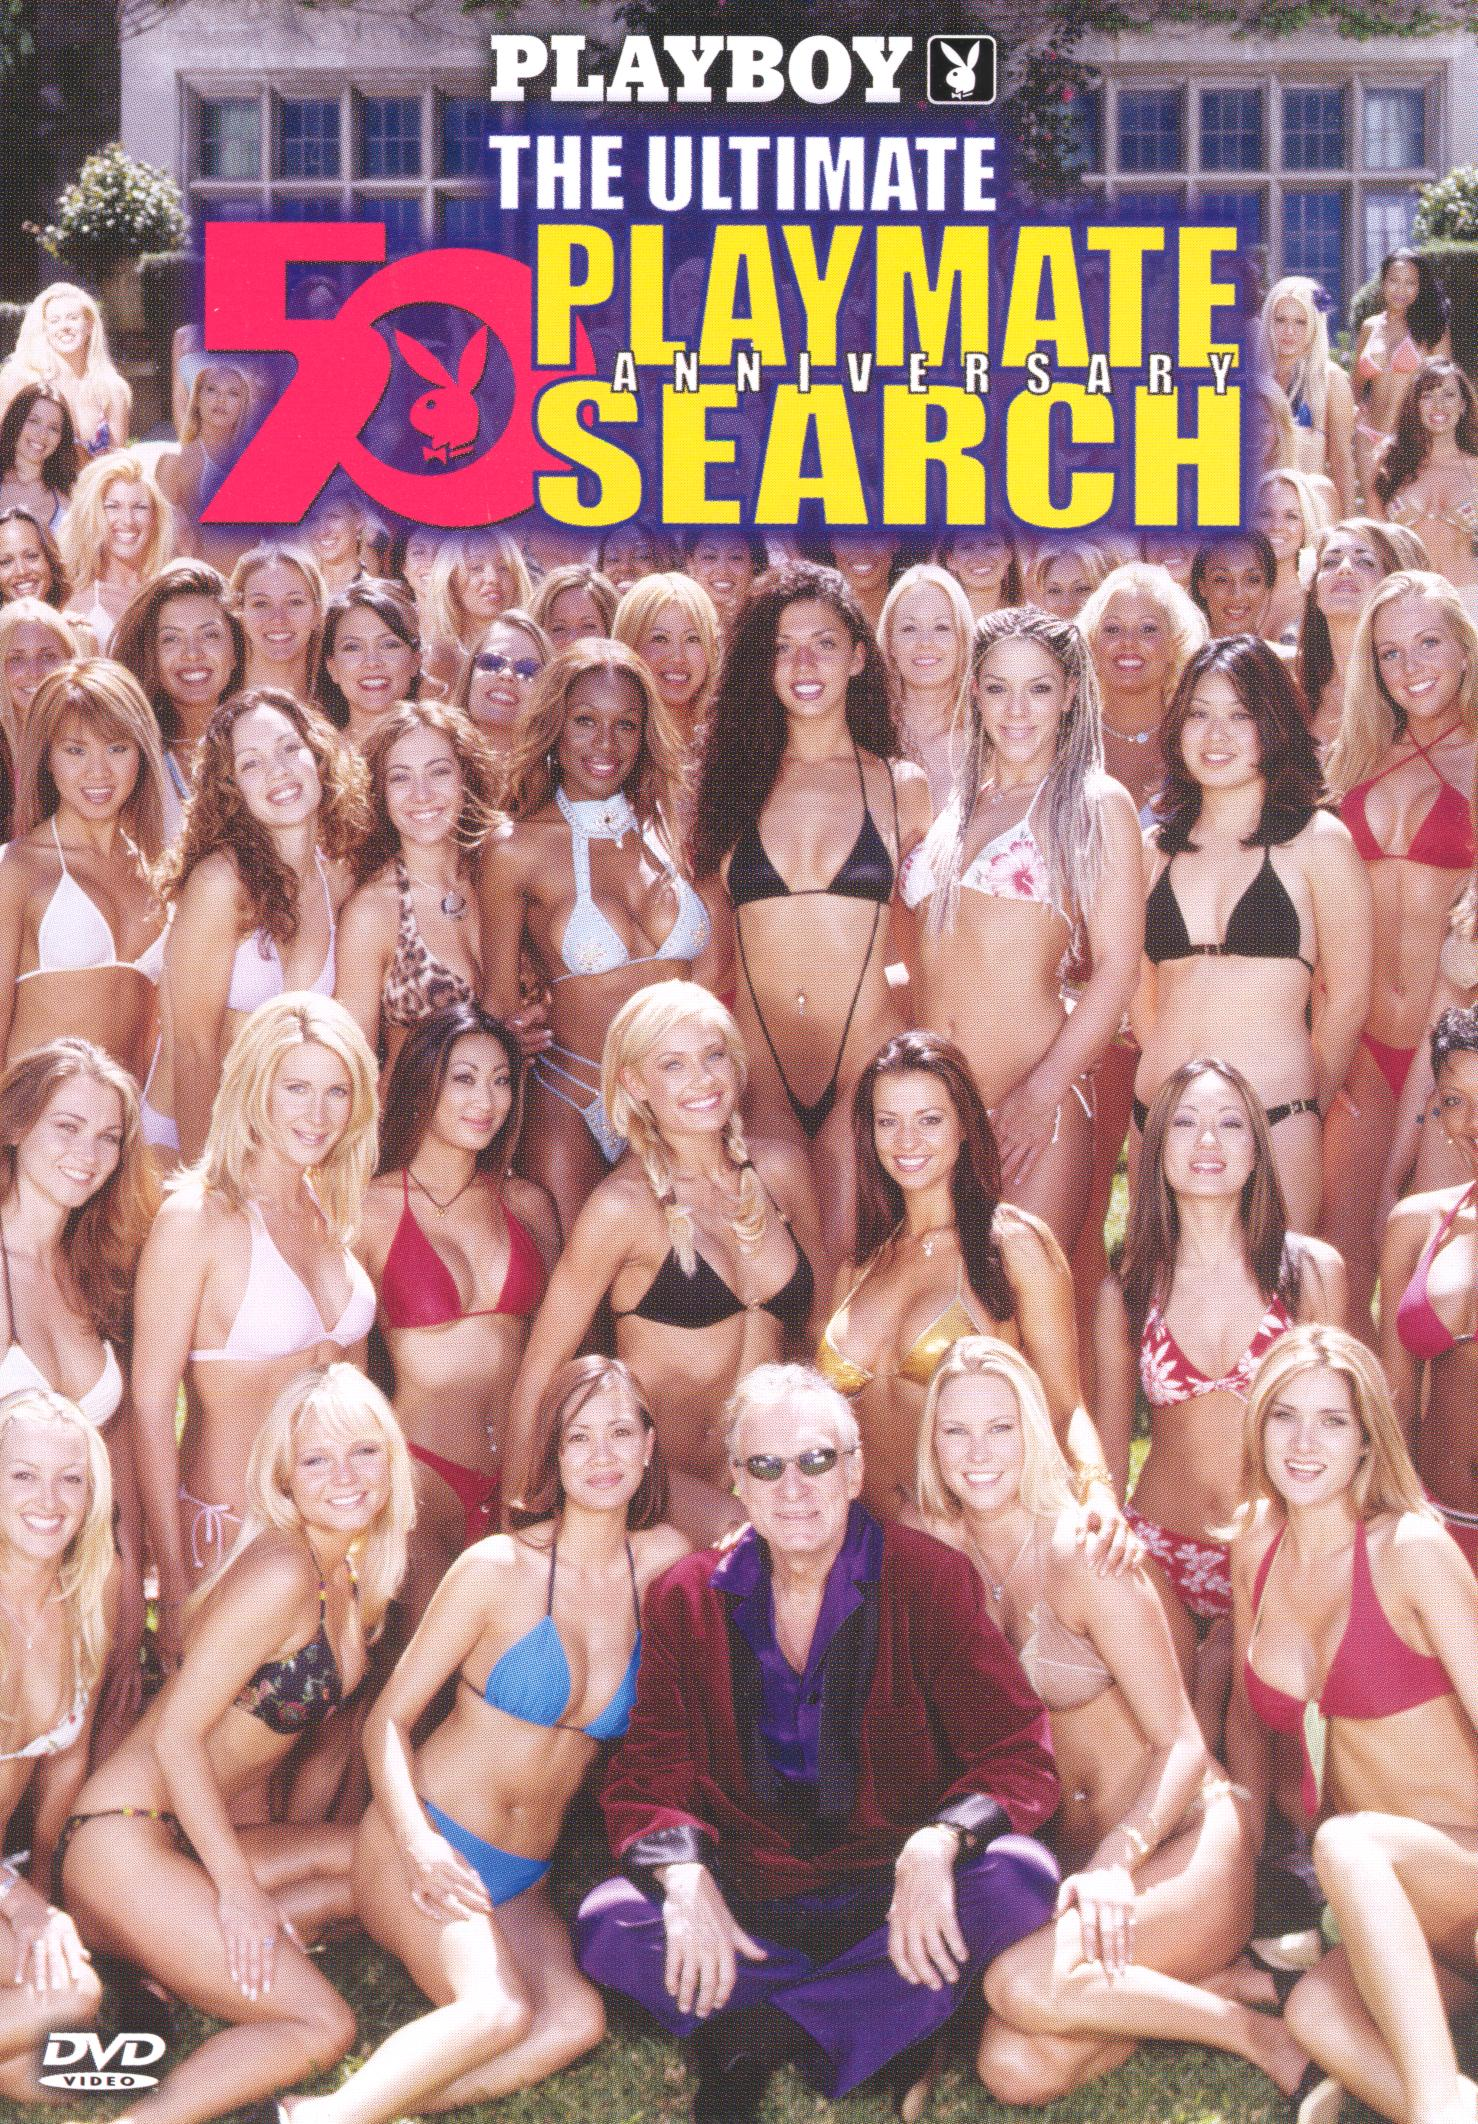 Playboy: The Ultimate Playmate Search